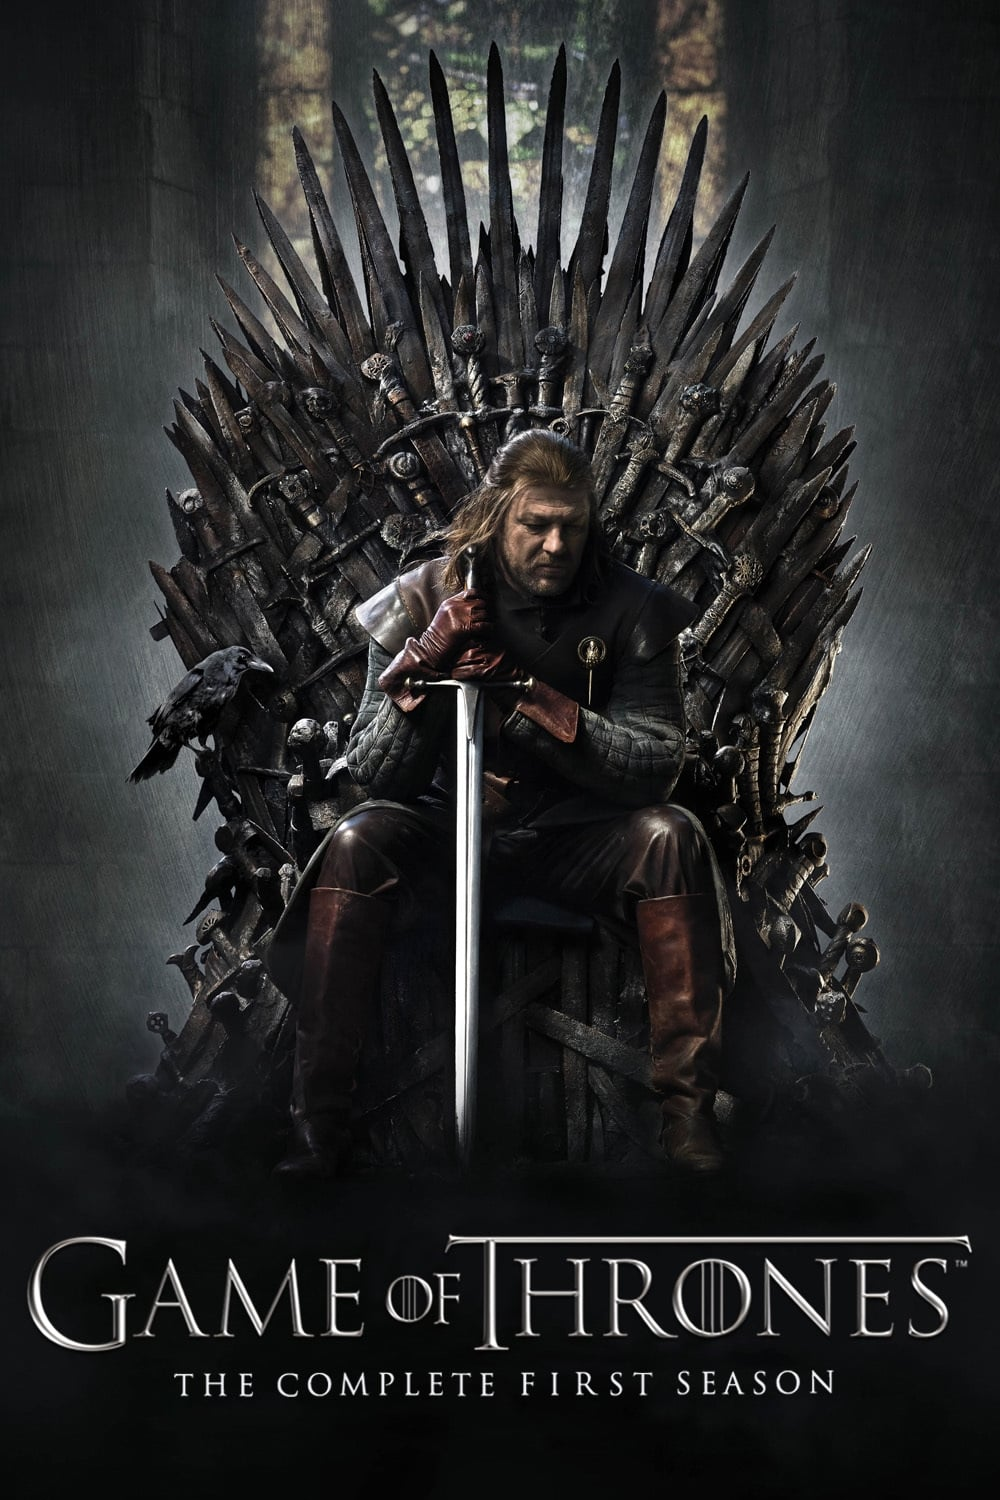 http://homesofsurrey.com/game-of-thrones-1a-temporada-2011-bdrip-bluray-720p-torrent-dual-audio/